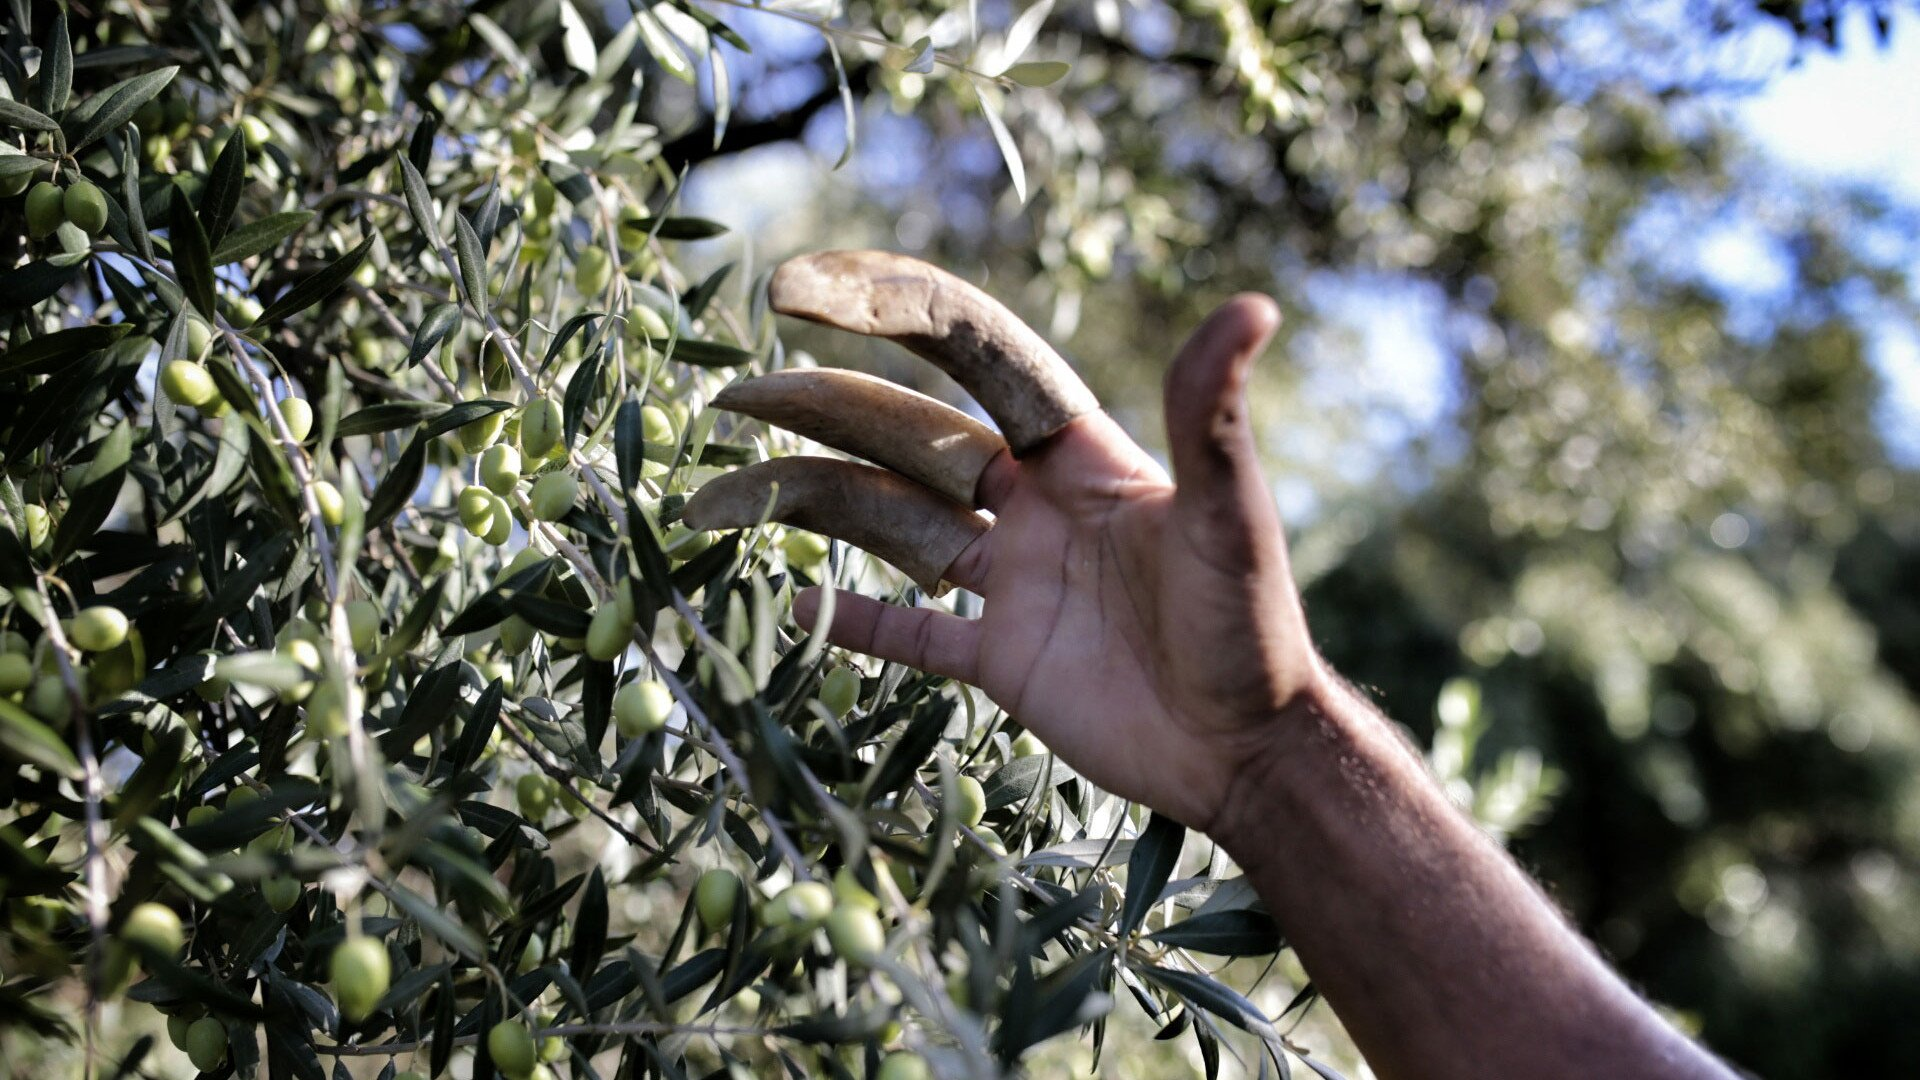 Olive Harvest in Tunisia - Best Season 2020